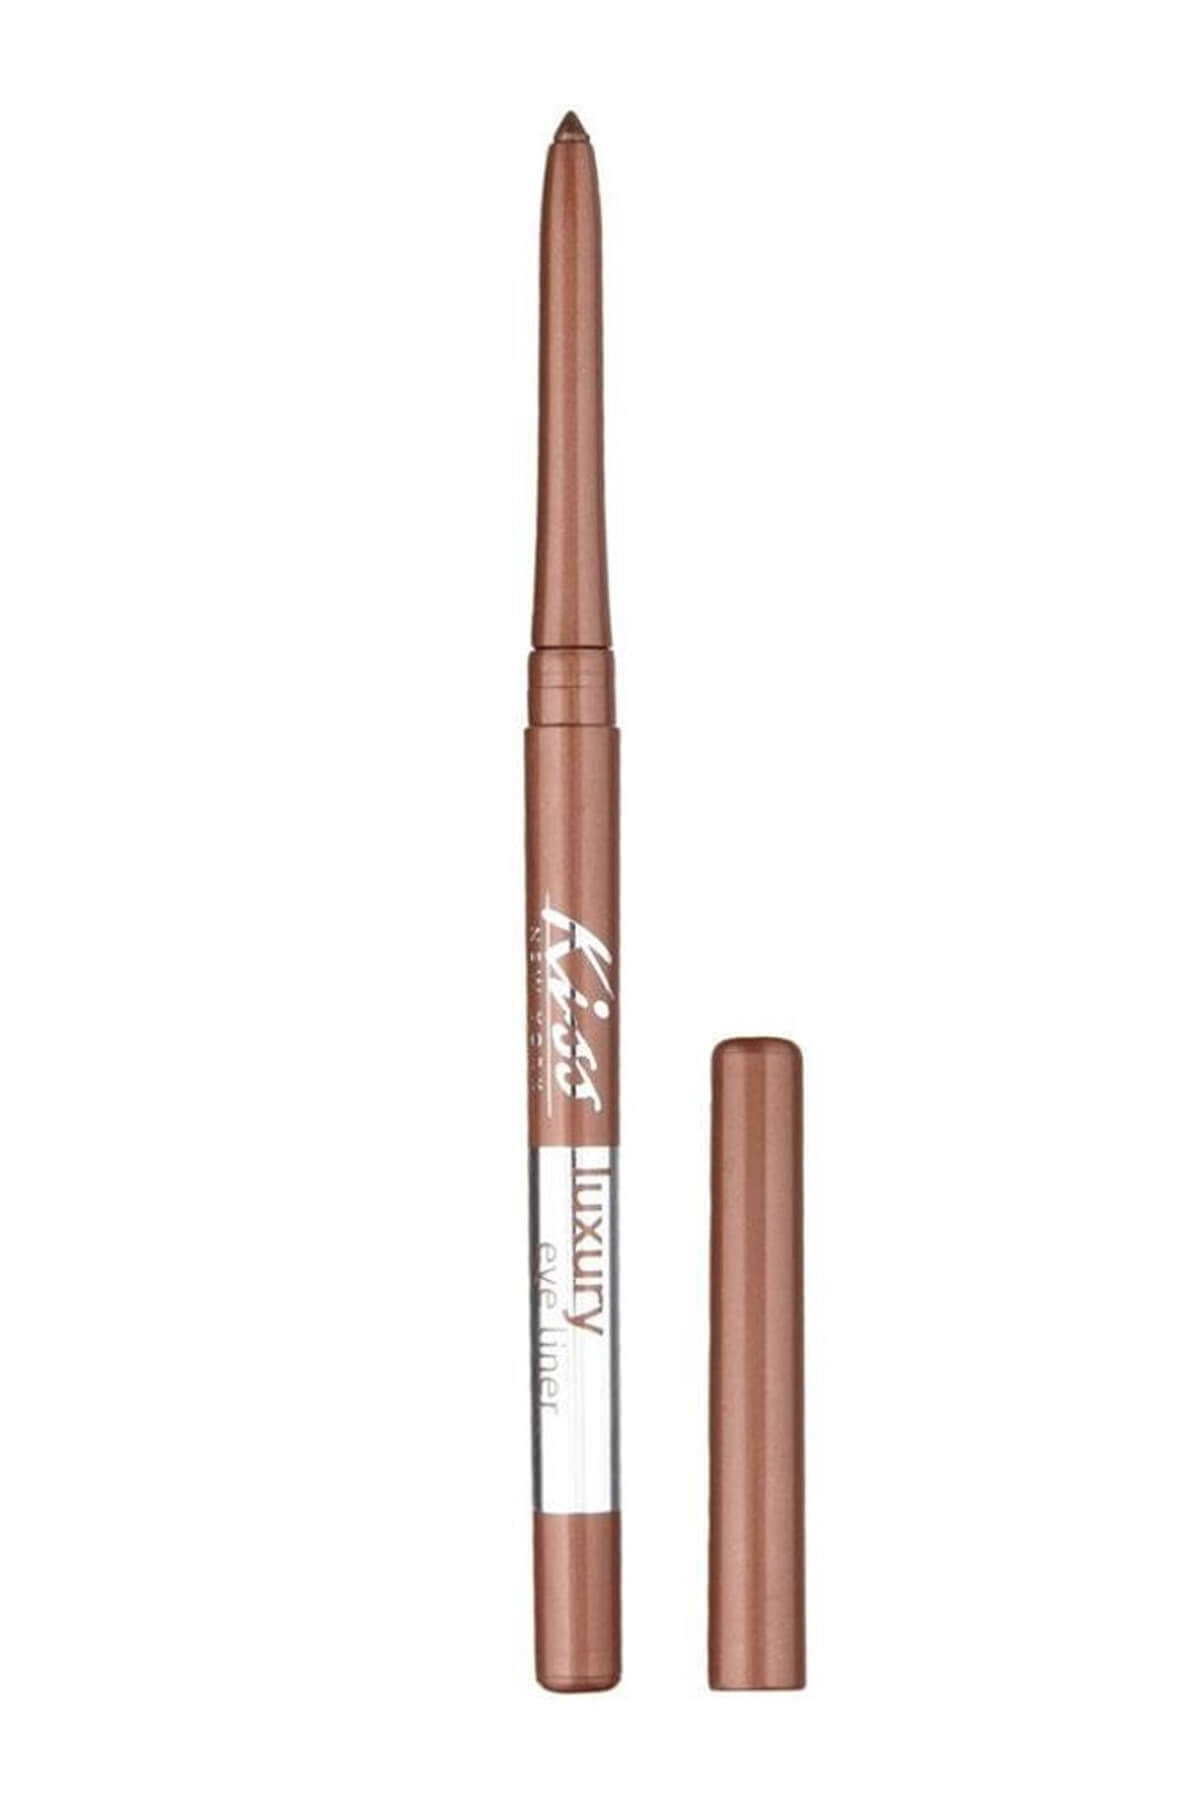 Kiss Göz Kalemi - Luxury Eye Liner Seductive Bronze 731509536997 1